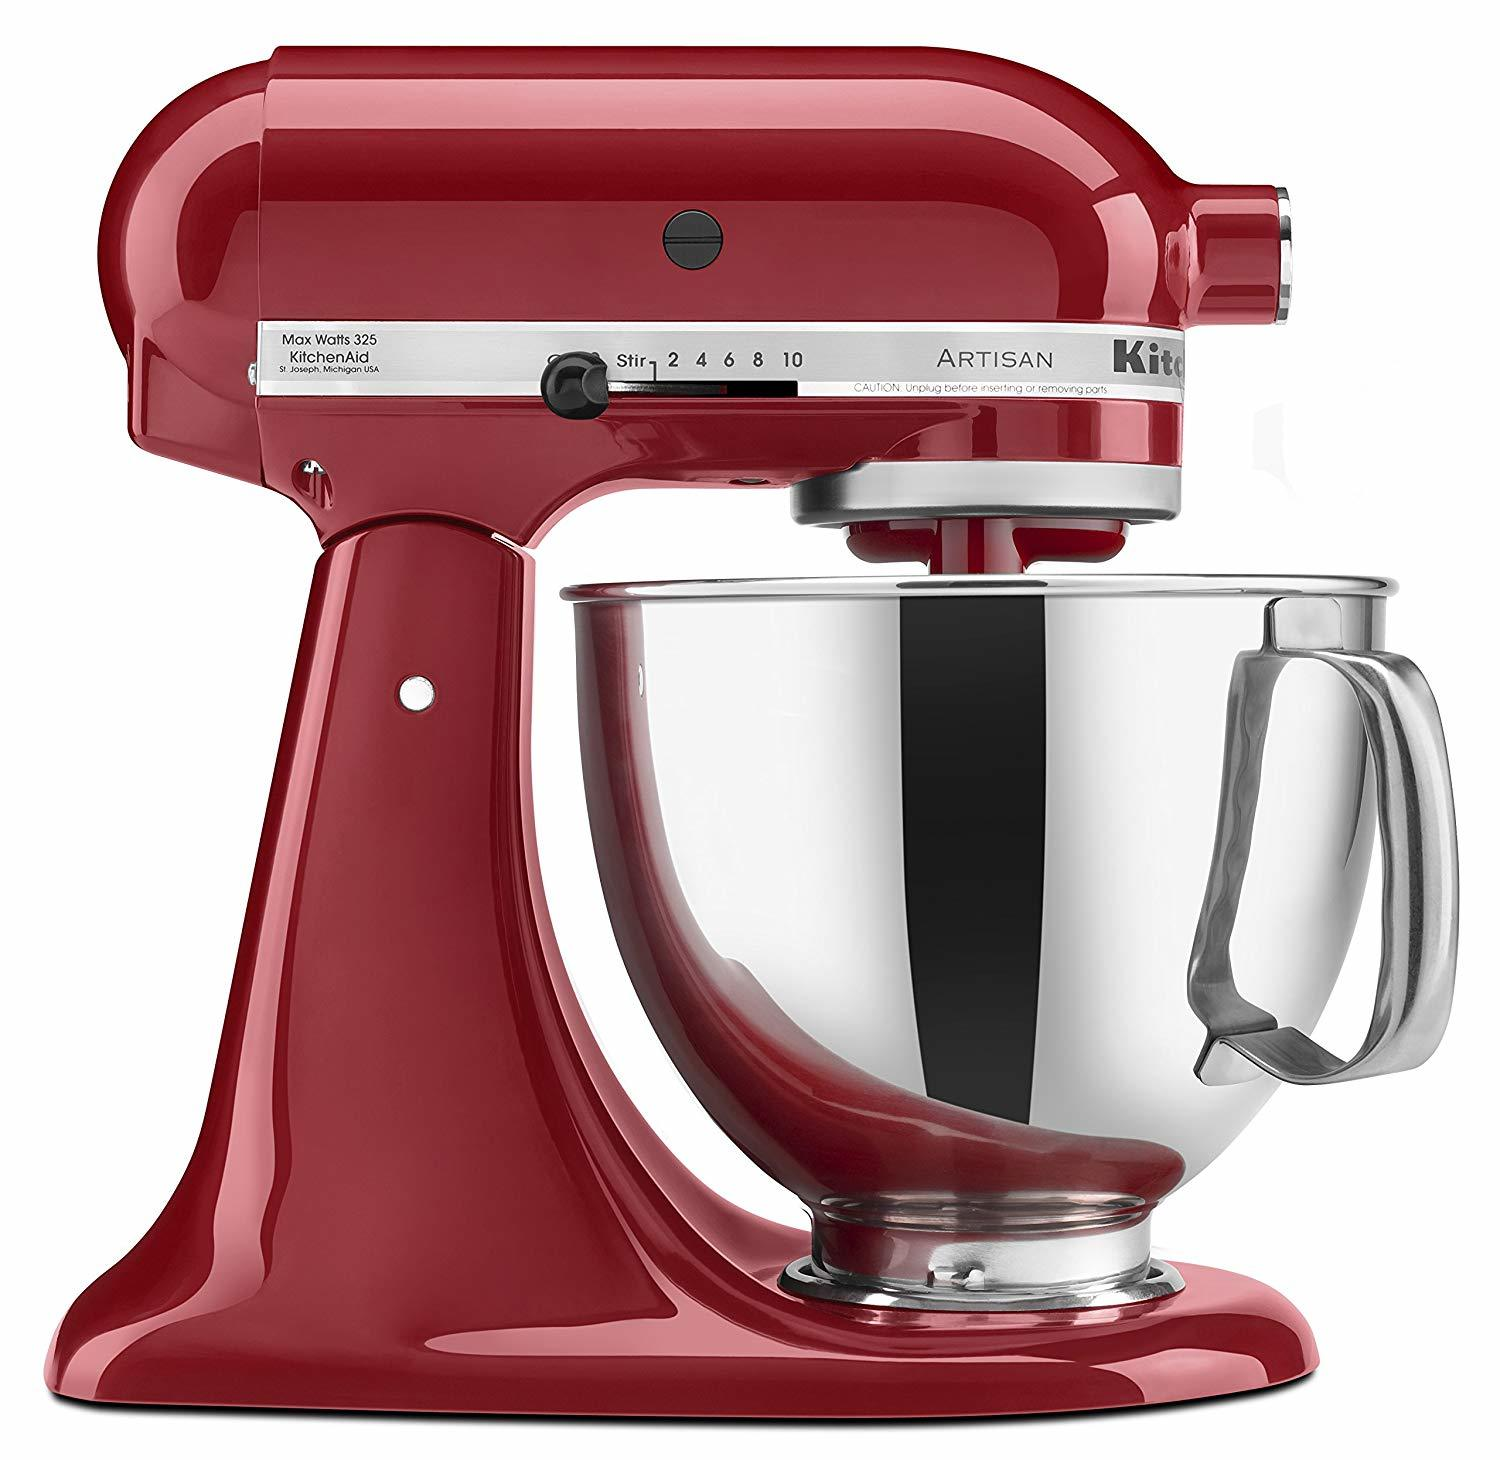 Amazing Where To Save 100 On A Kitchenaid Stand Mixer Aol Lifestyle Home Interior And Landscaping Analalmasignezvosmurscom